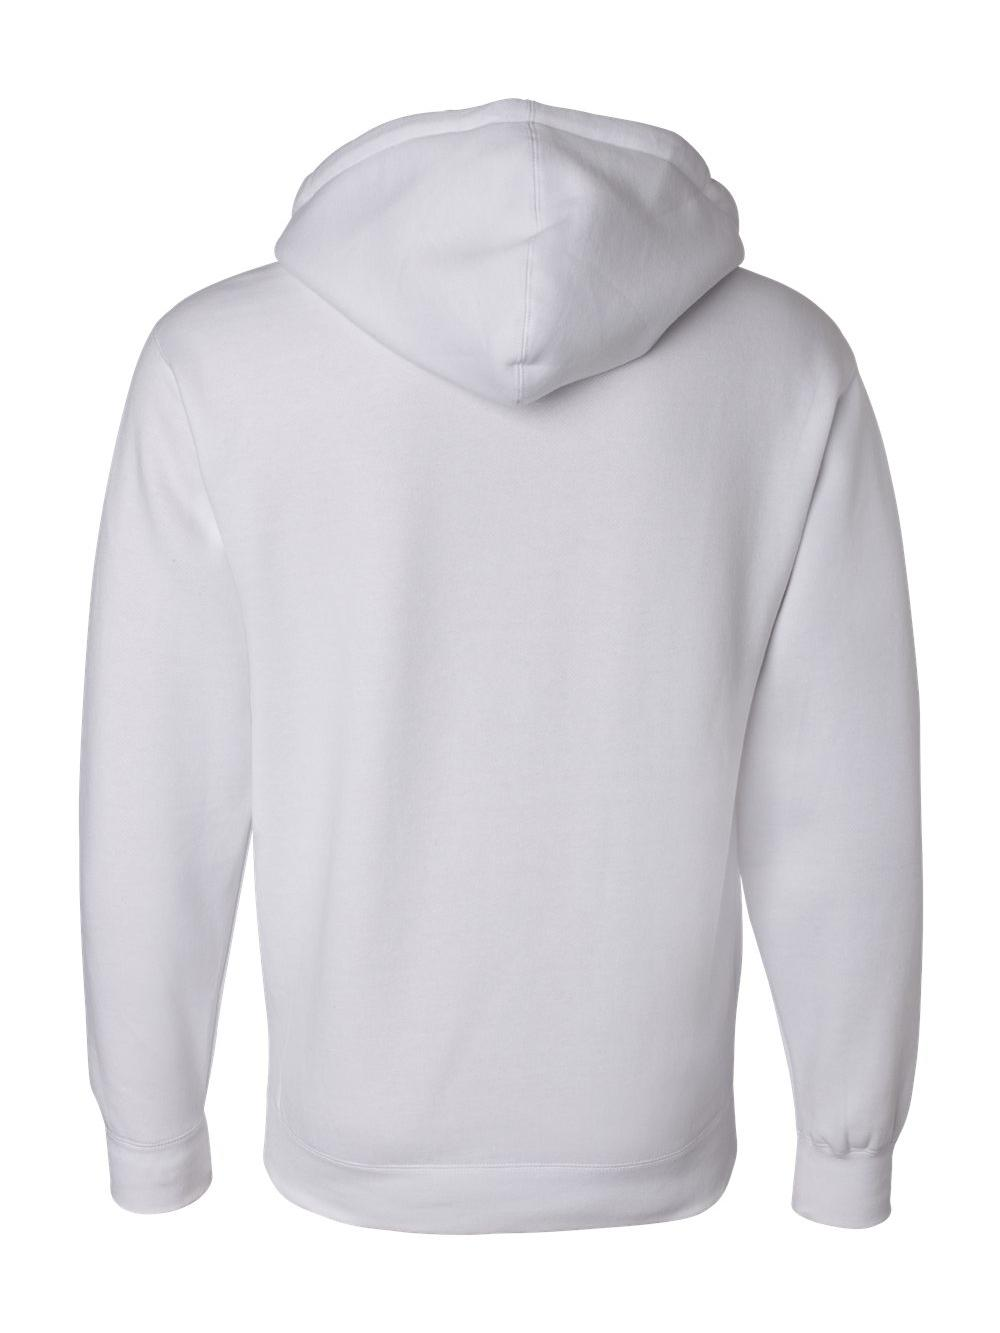 IND4000 Independent Trading Co Hooded Pullover Sweatshirt